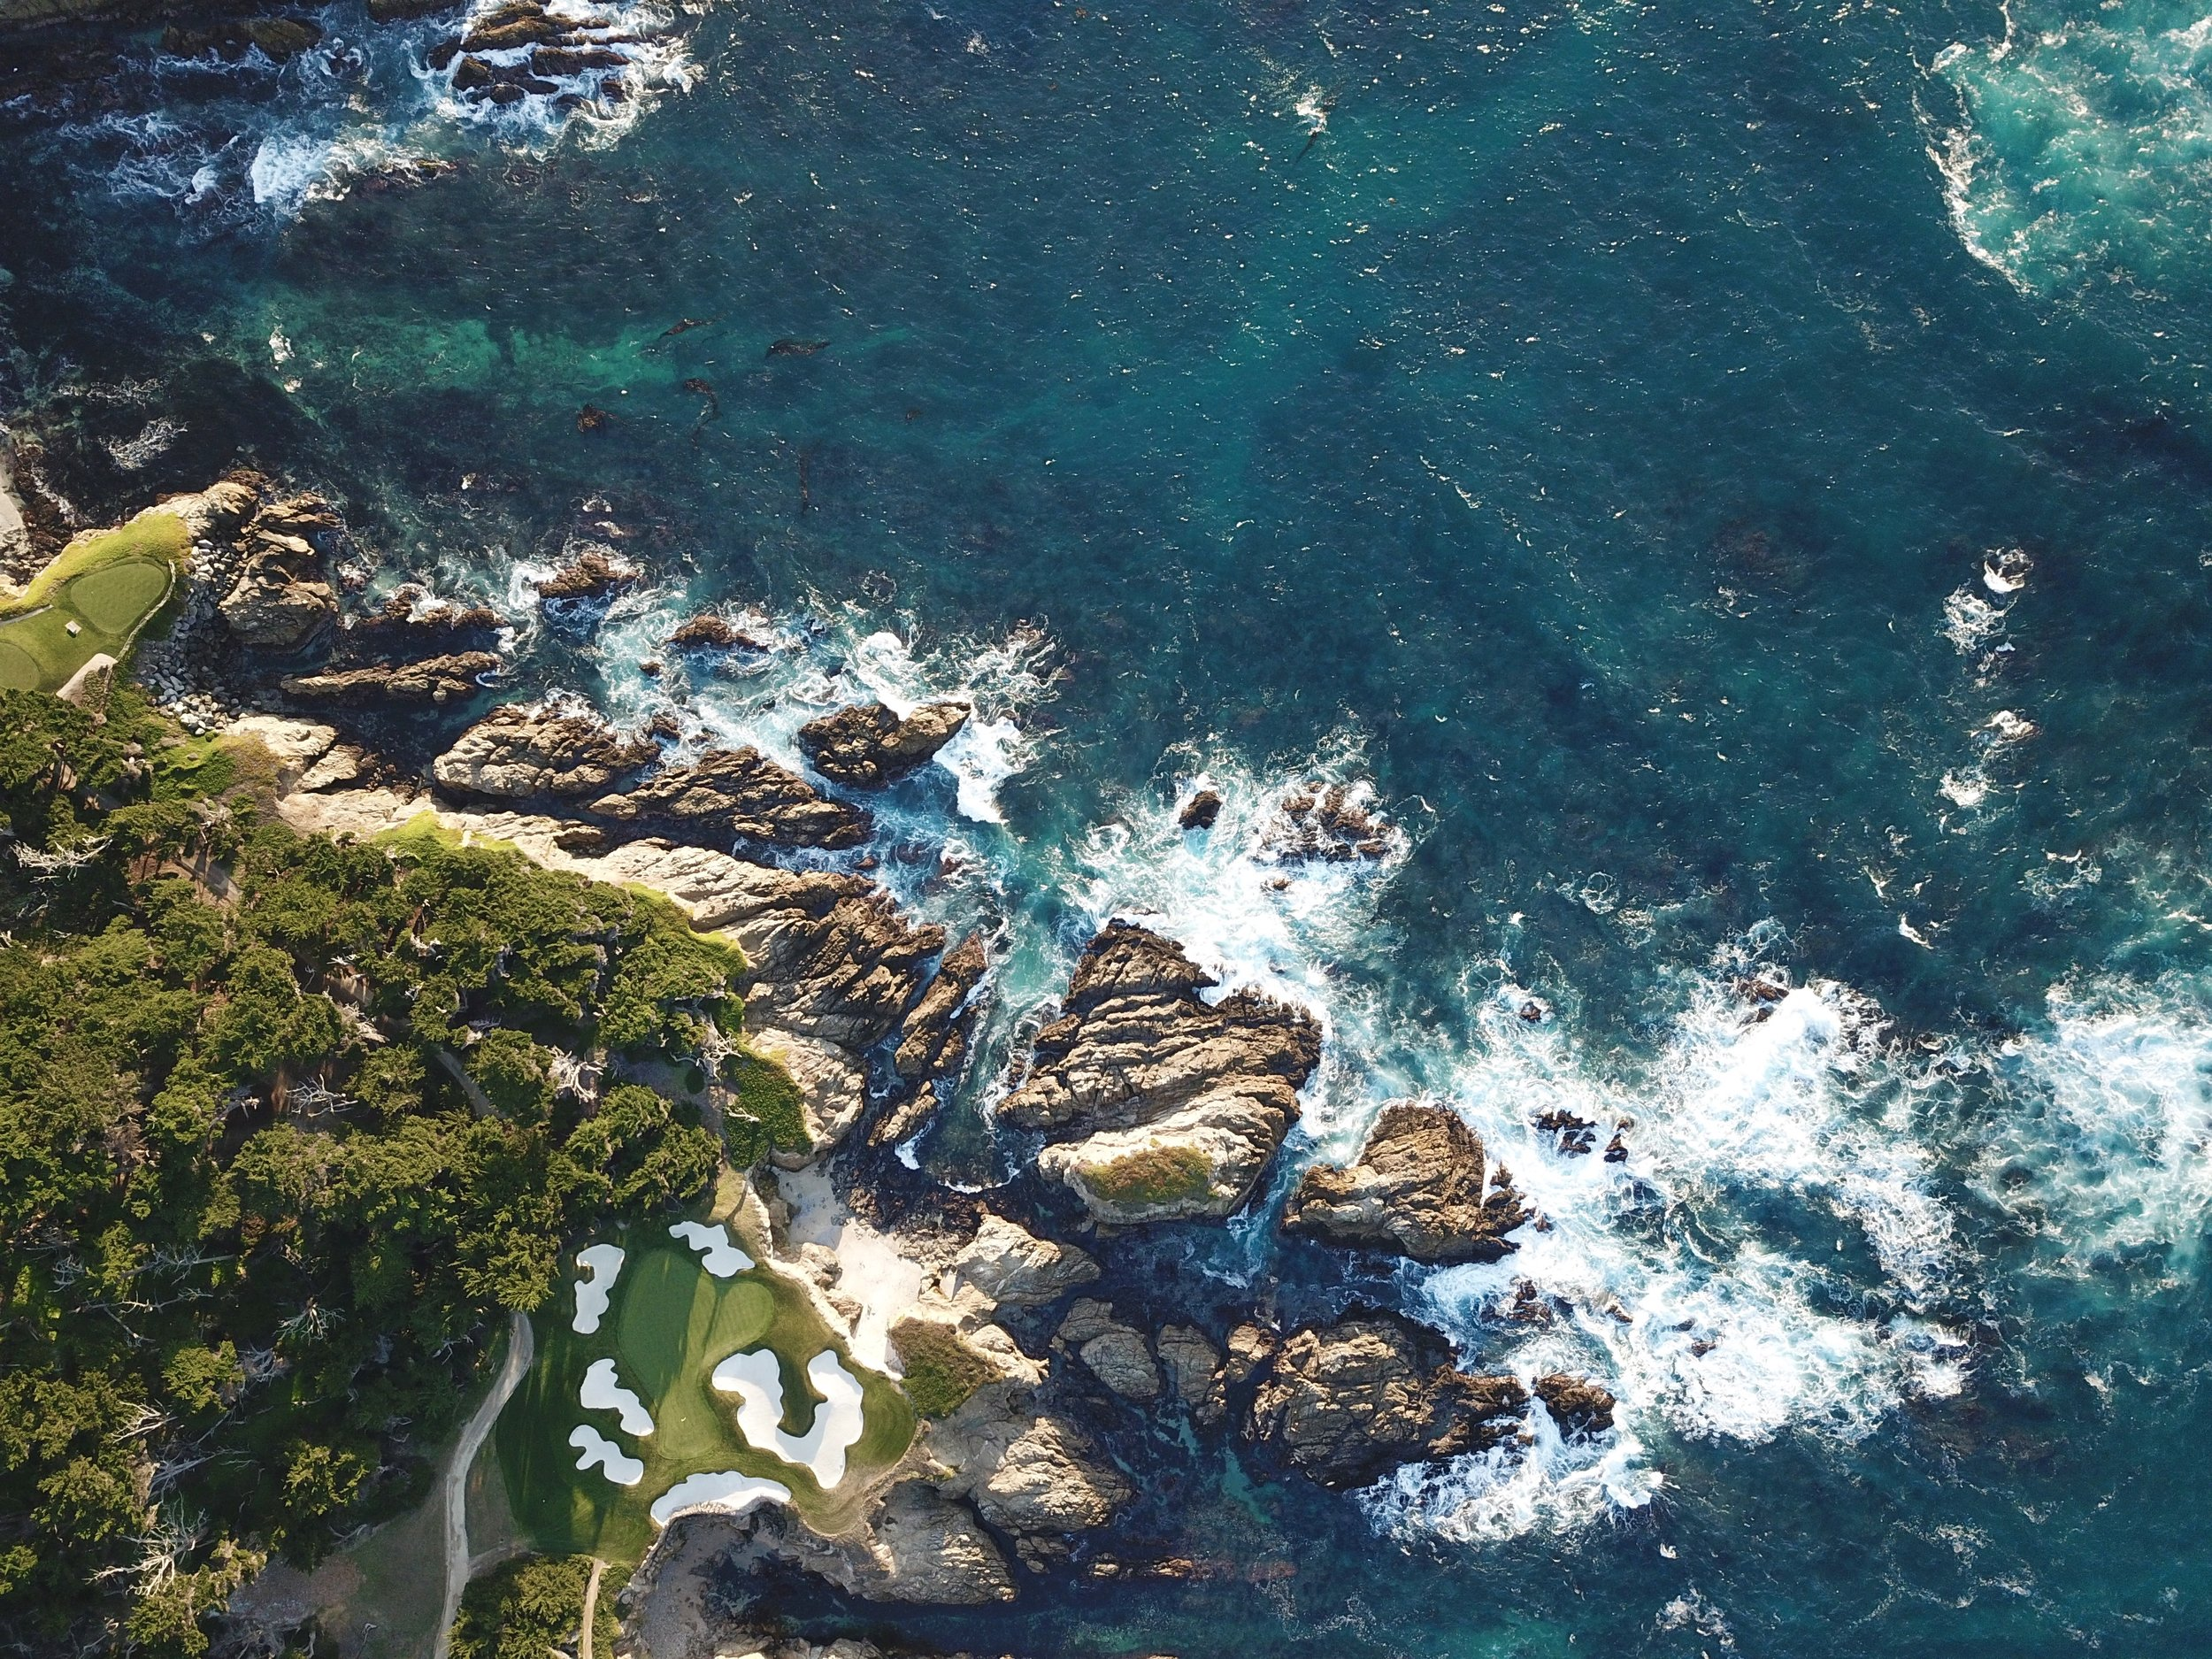 One of our favorite spots on the 17 Mile Drive (you may need a helicopter to see this)